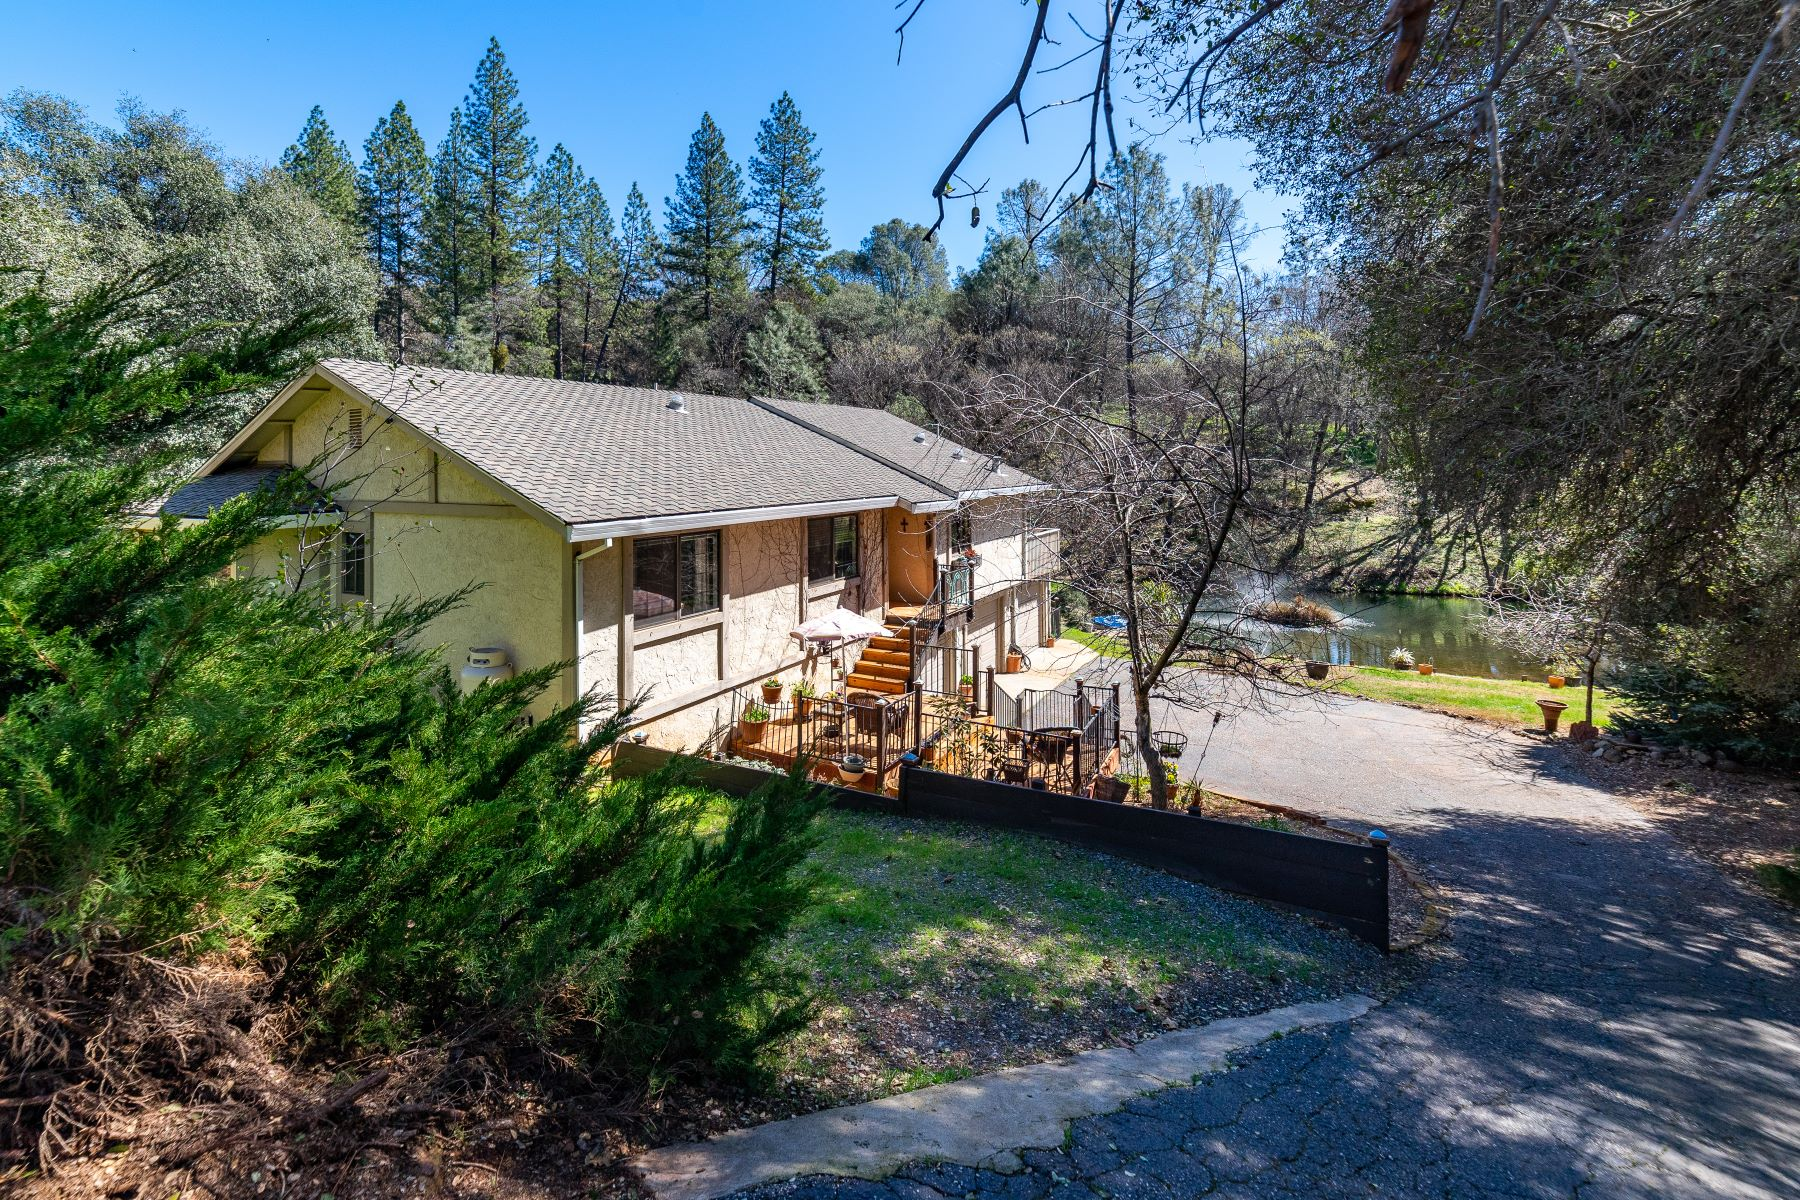 Single Family Home for Active at Beautifully Updated Home In The Country Among All The Trees and Outcroppings 25139 Long Court Auburn, California 95602 United States